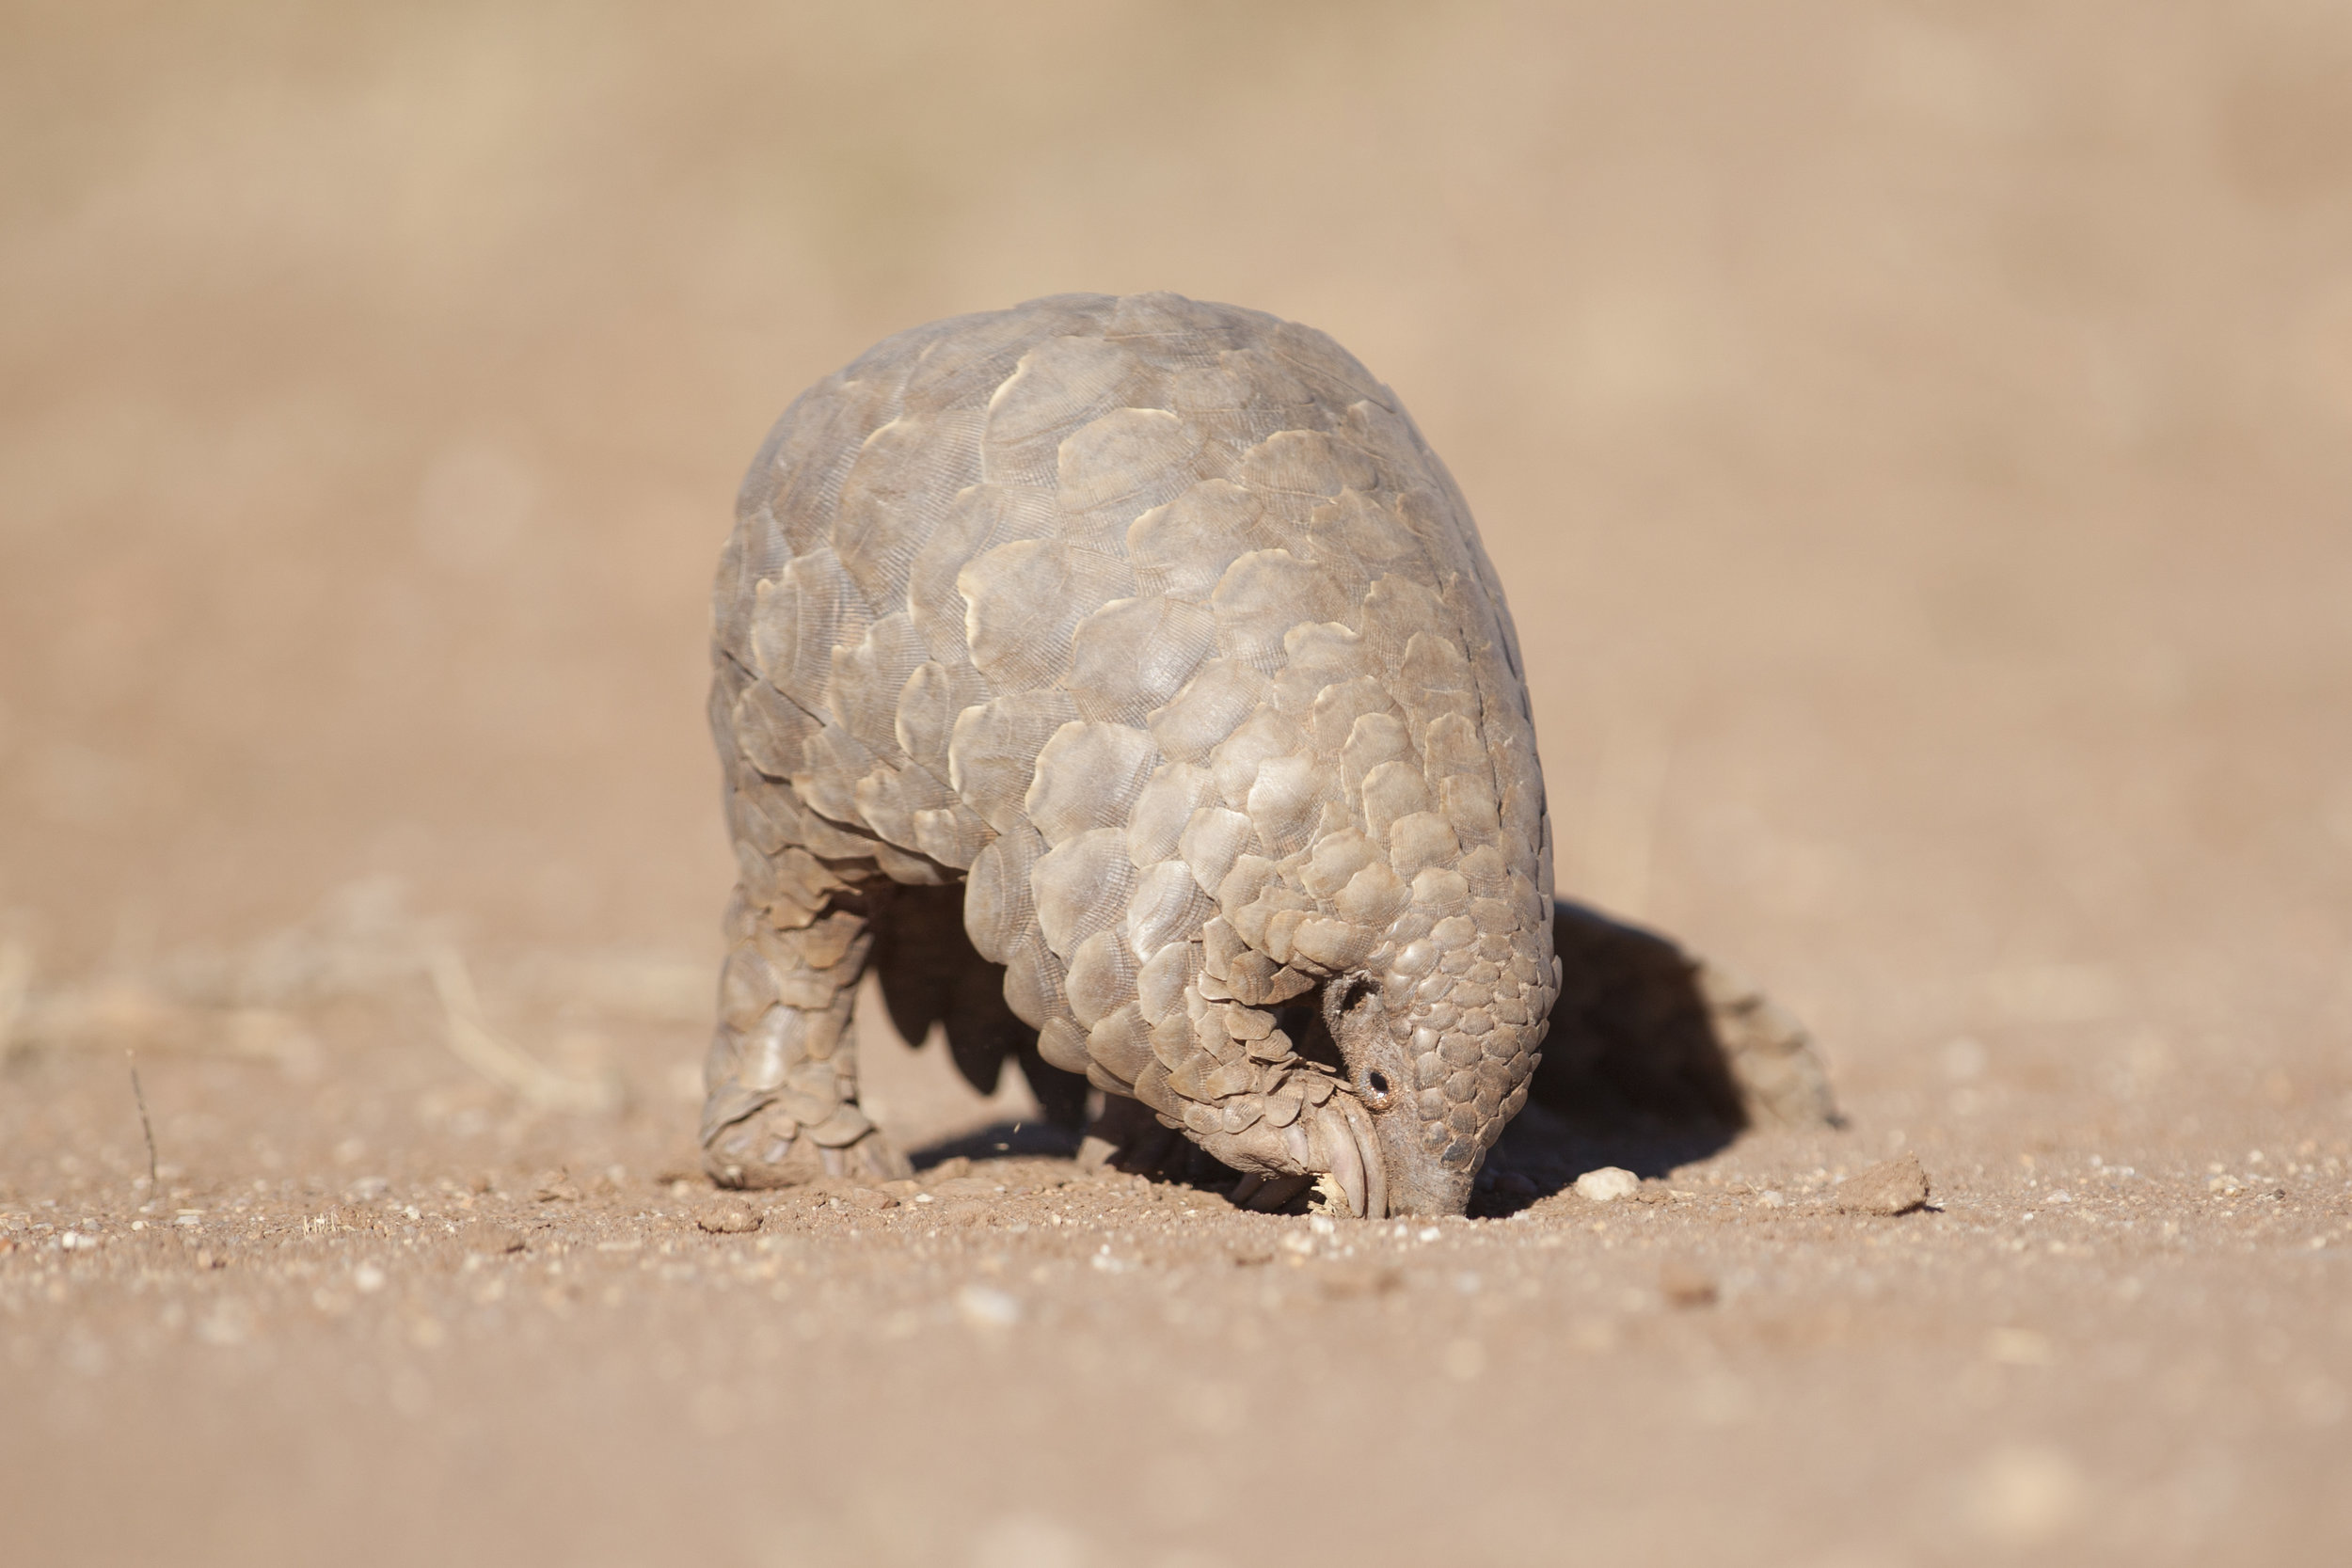 One adult pangolin can eat 70 million insects each year. -